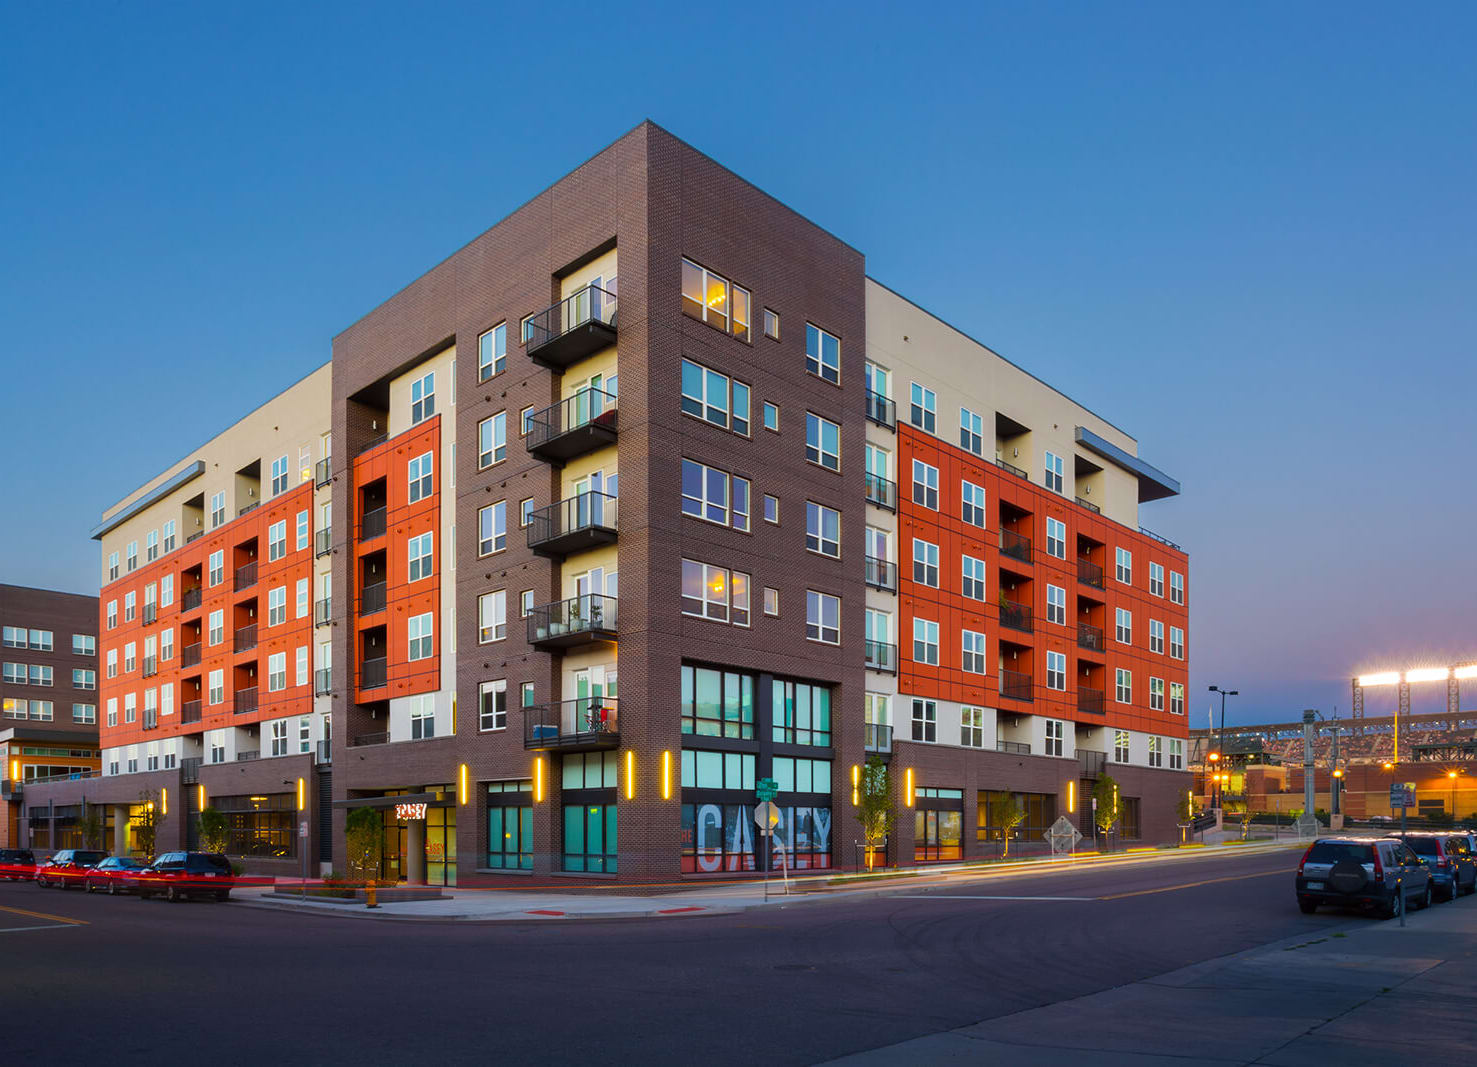 Luxury Apartment Homes Available at The Casey, 2100 Delgany, Denver